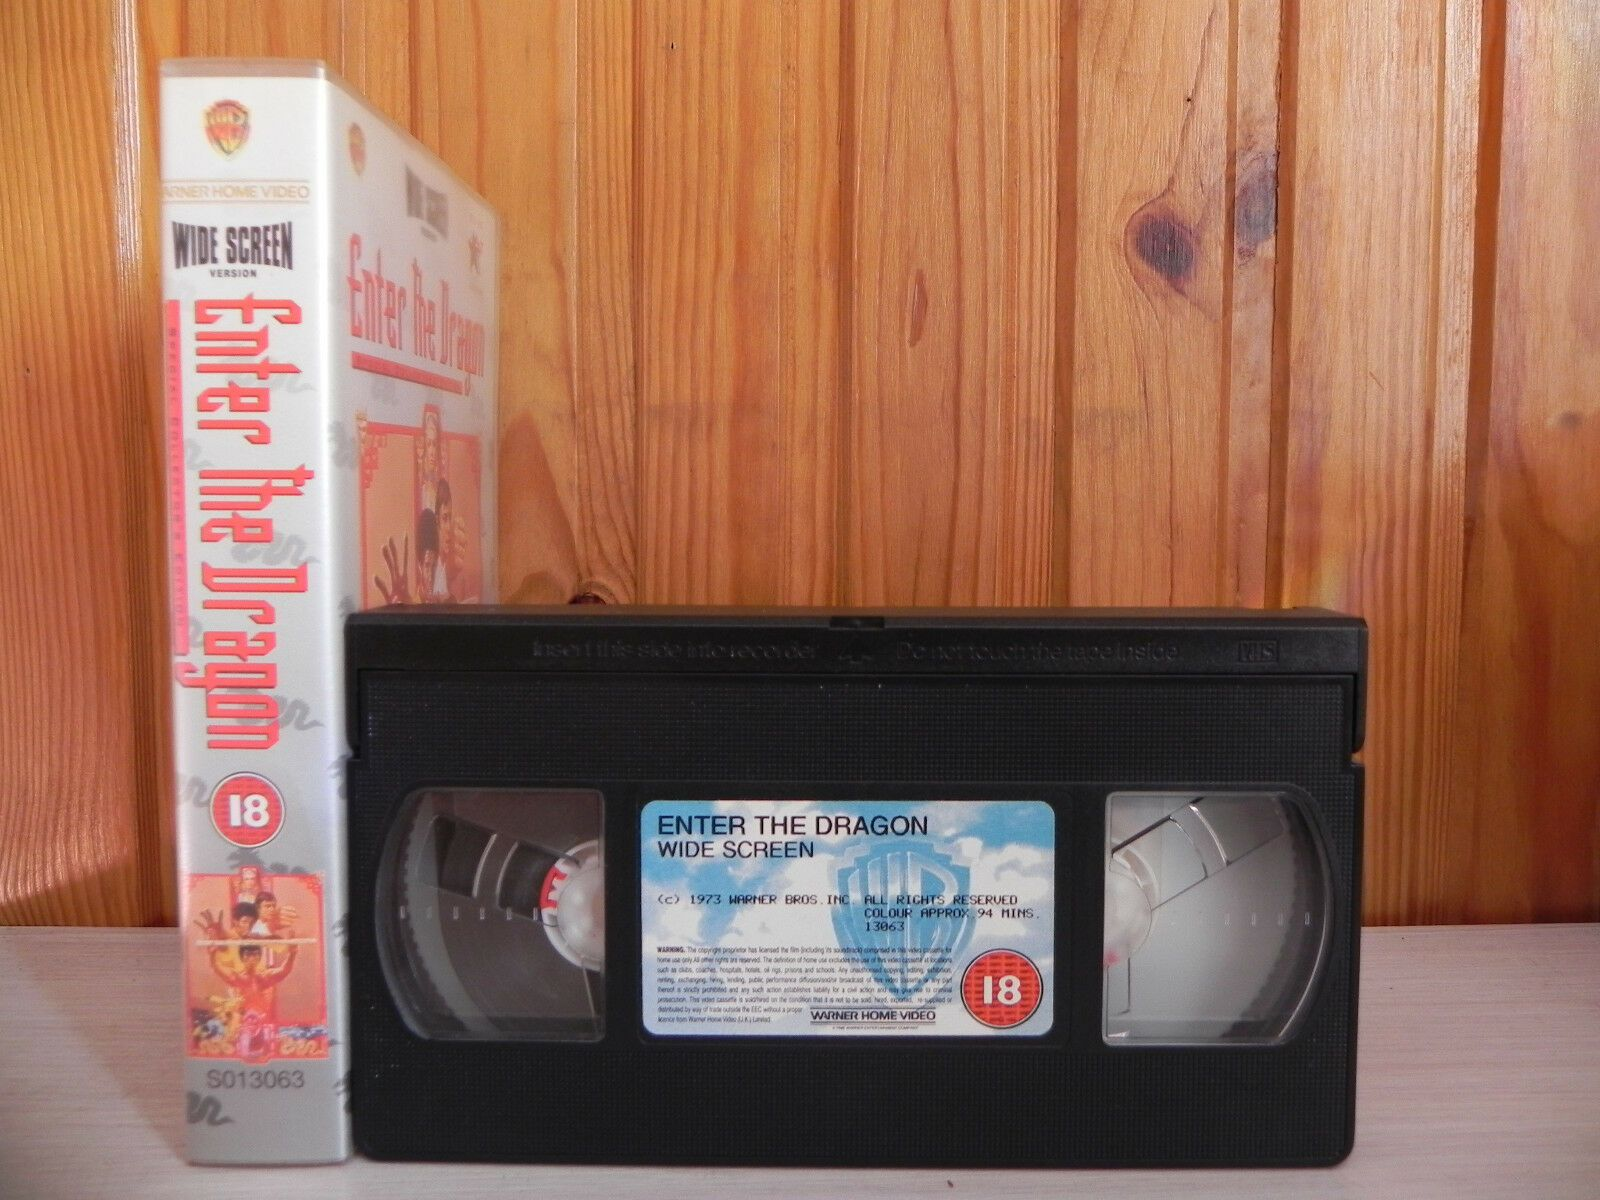 Enter The Dragon - Bruce Lee - Widescreen - Remastered Kung-Fu - Action - VHS